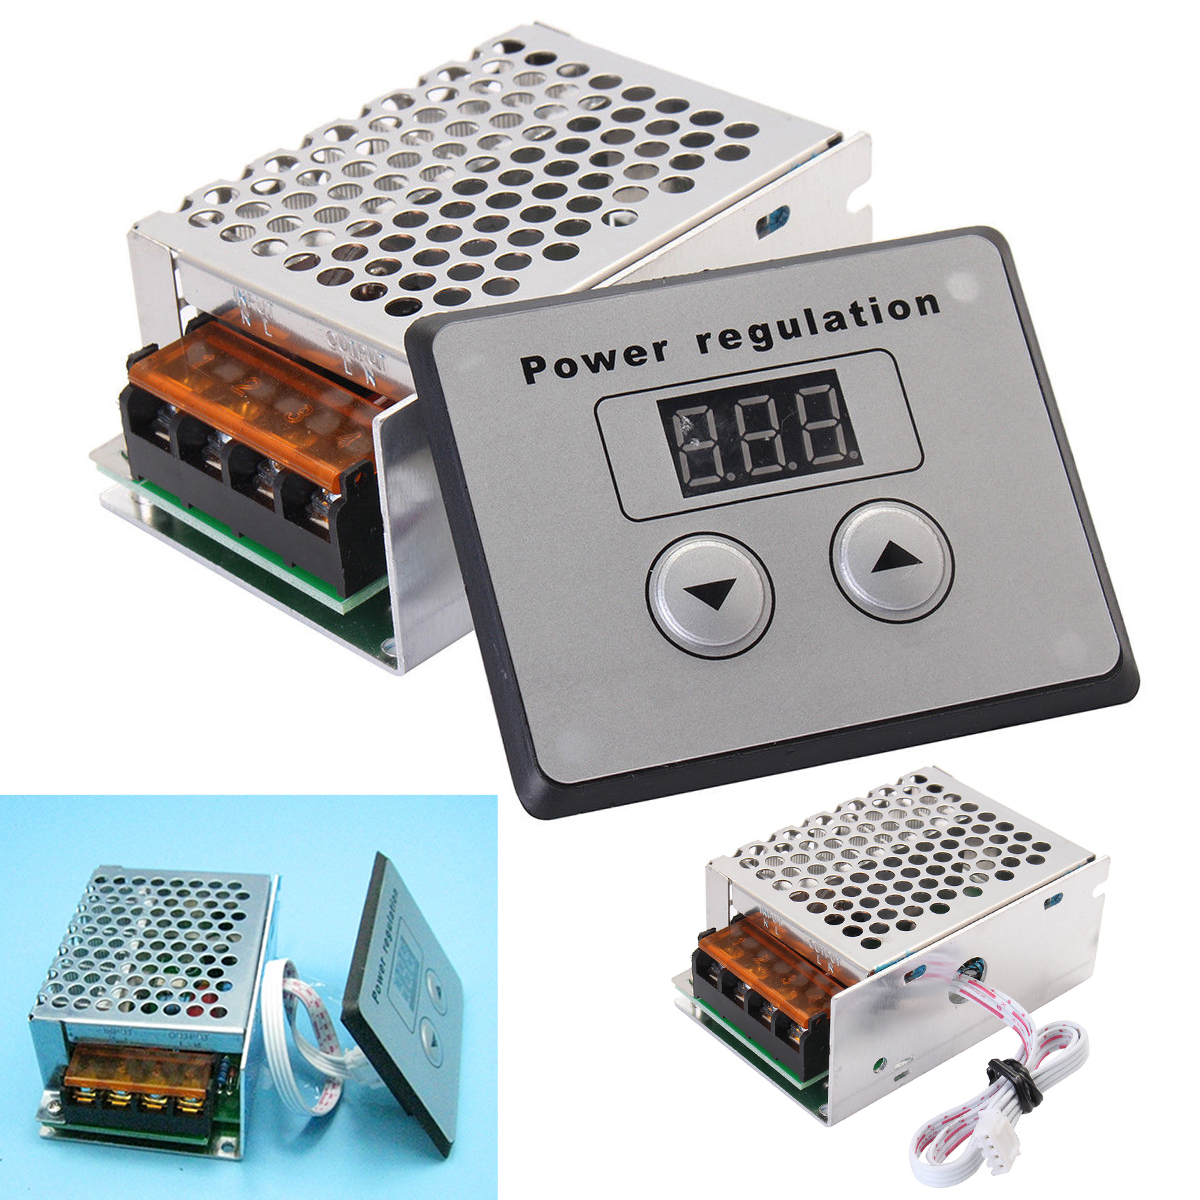 4000W <font><b>220V</b></font> AC SCR <font><b>Voltage</b></font> <font><b>Regulator</b></font> Dimmer Mayitr Electric Motor Speed Temperature Controller for Water Heater Small Motors image